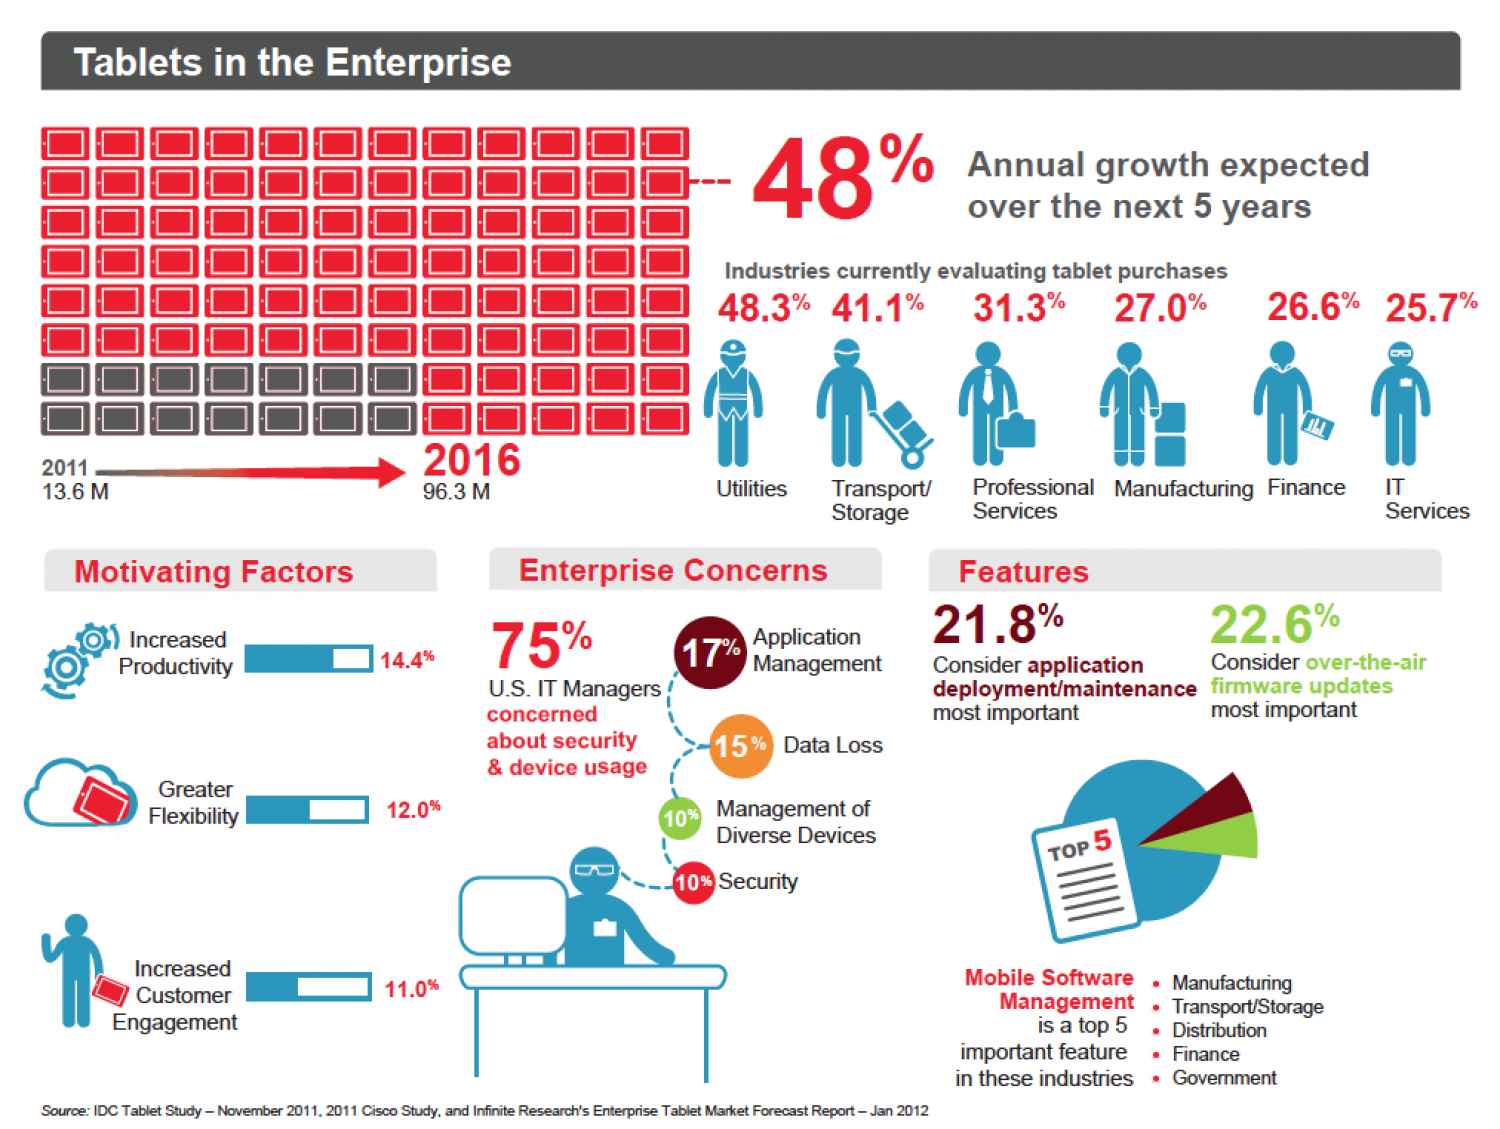 Tablets in the Enterprise Infographic